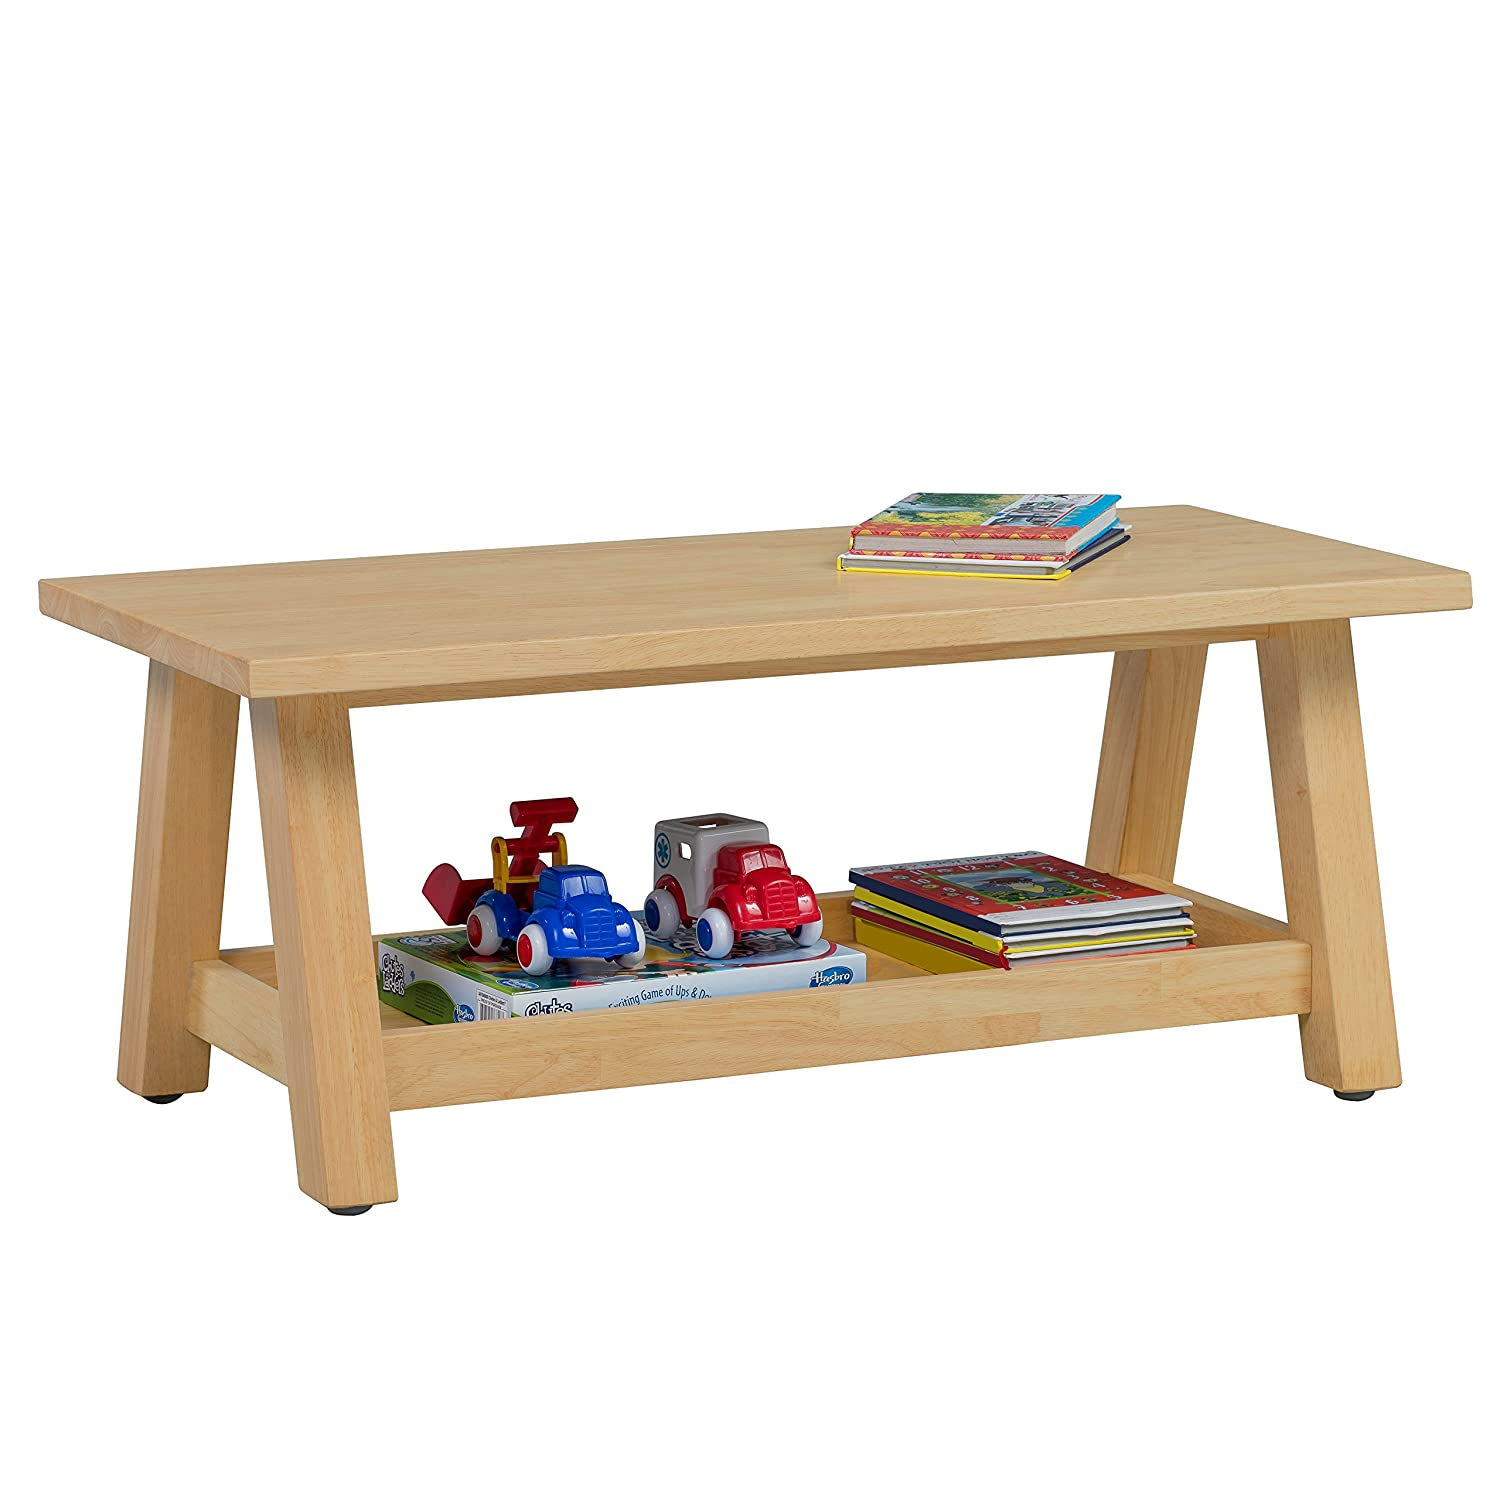 Amazon Com Ecr4kids Sit N Stash Solid Hardwood Bench With Storage